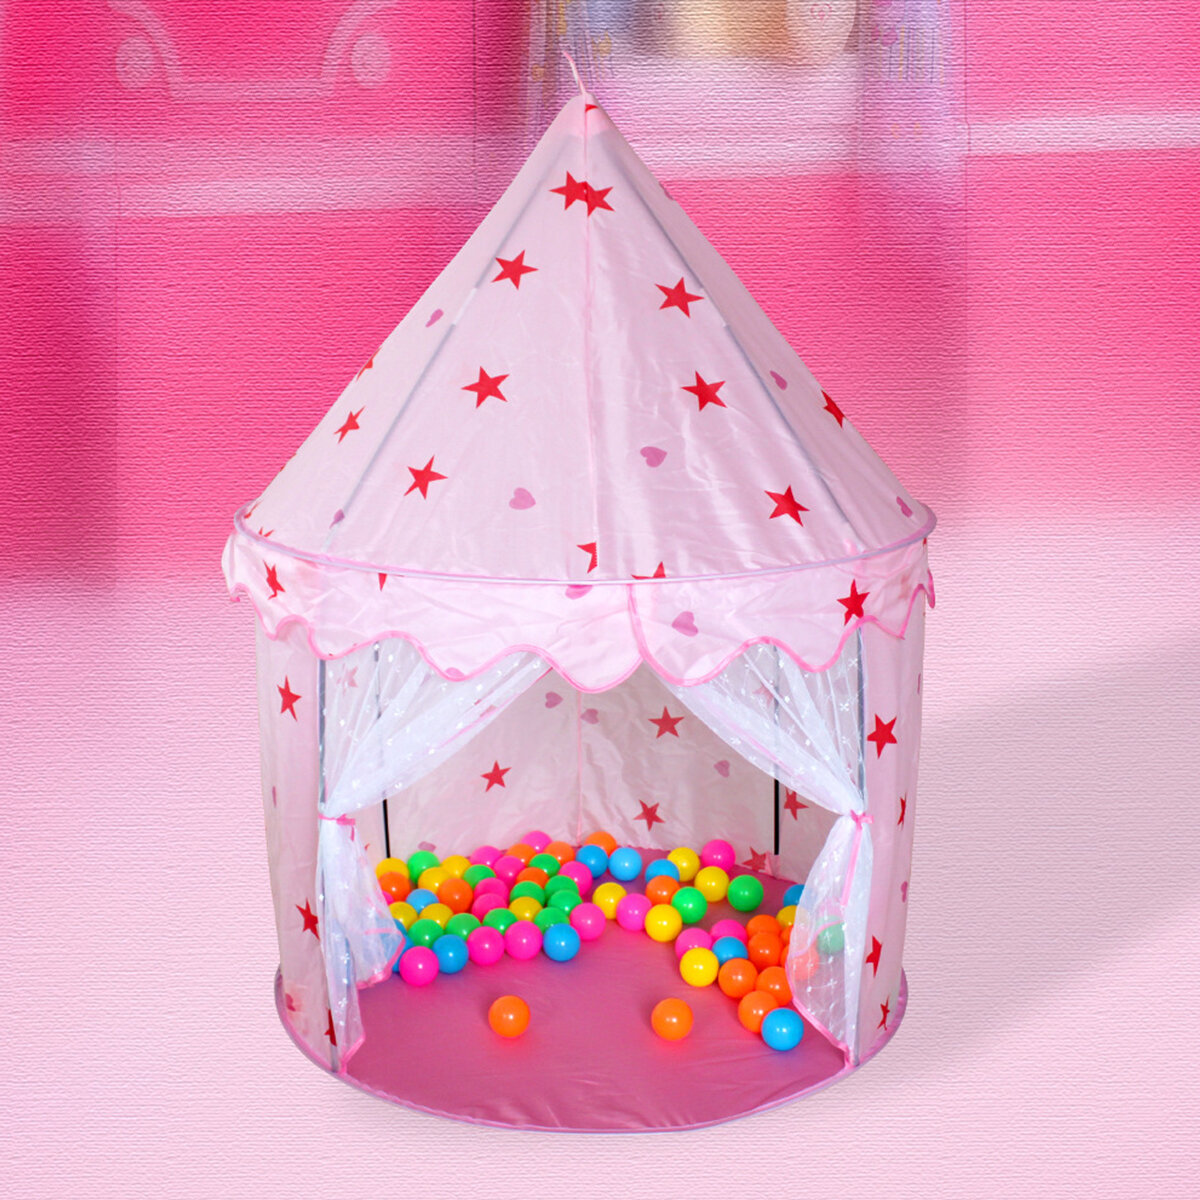 Creative Newborn Baby Photography Props Tent Background Studio Photo Decoration - 3